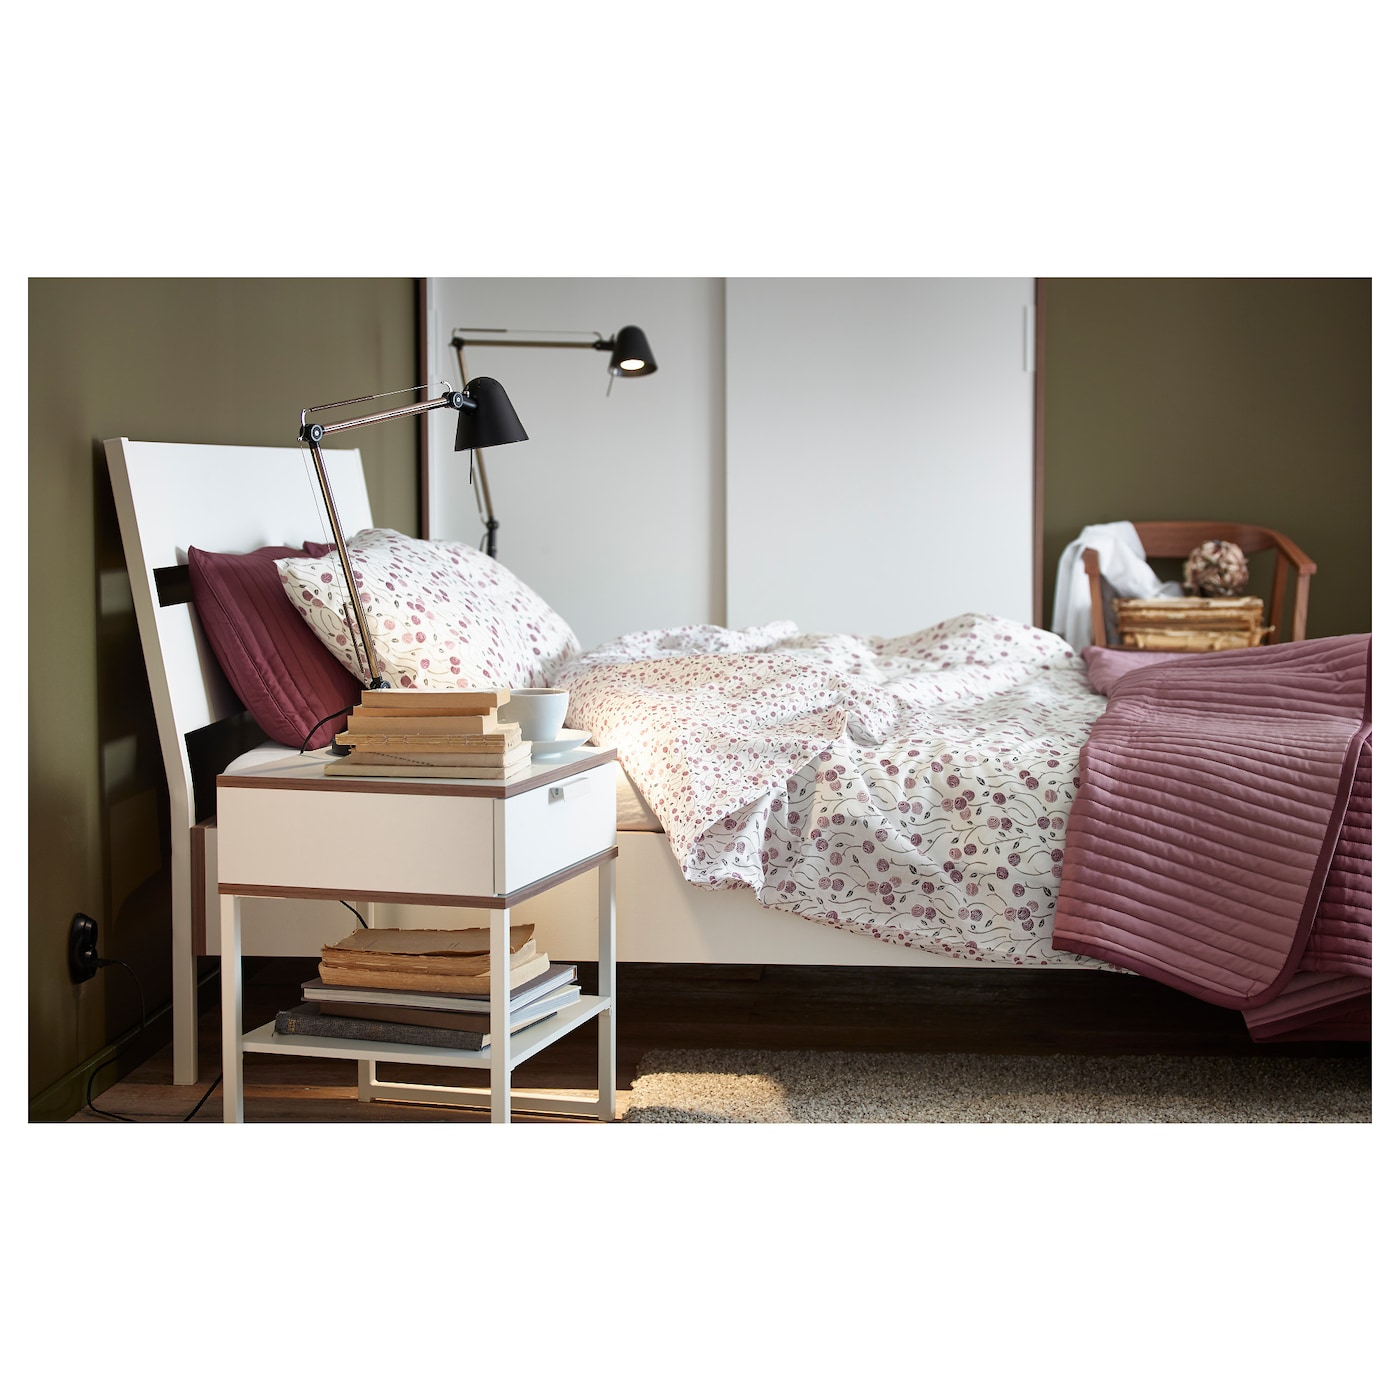 Ikea Trysil Bed Frame The Angled Headboard Allows You To Sit Comfortably When Reading In